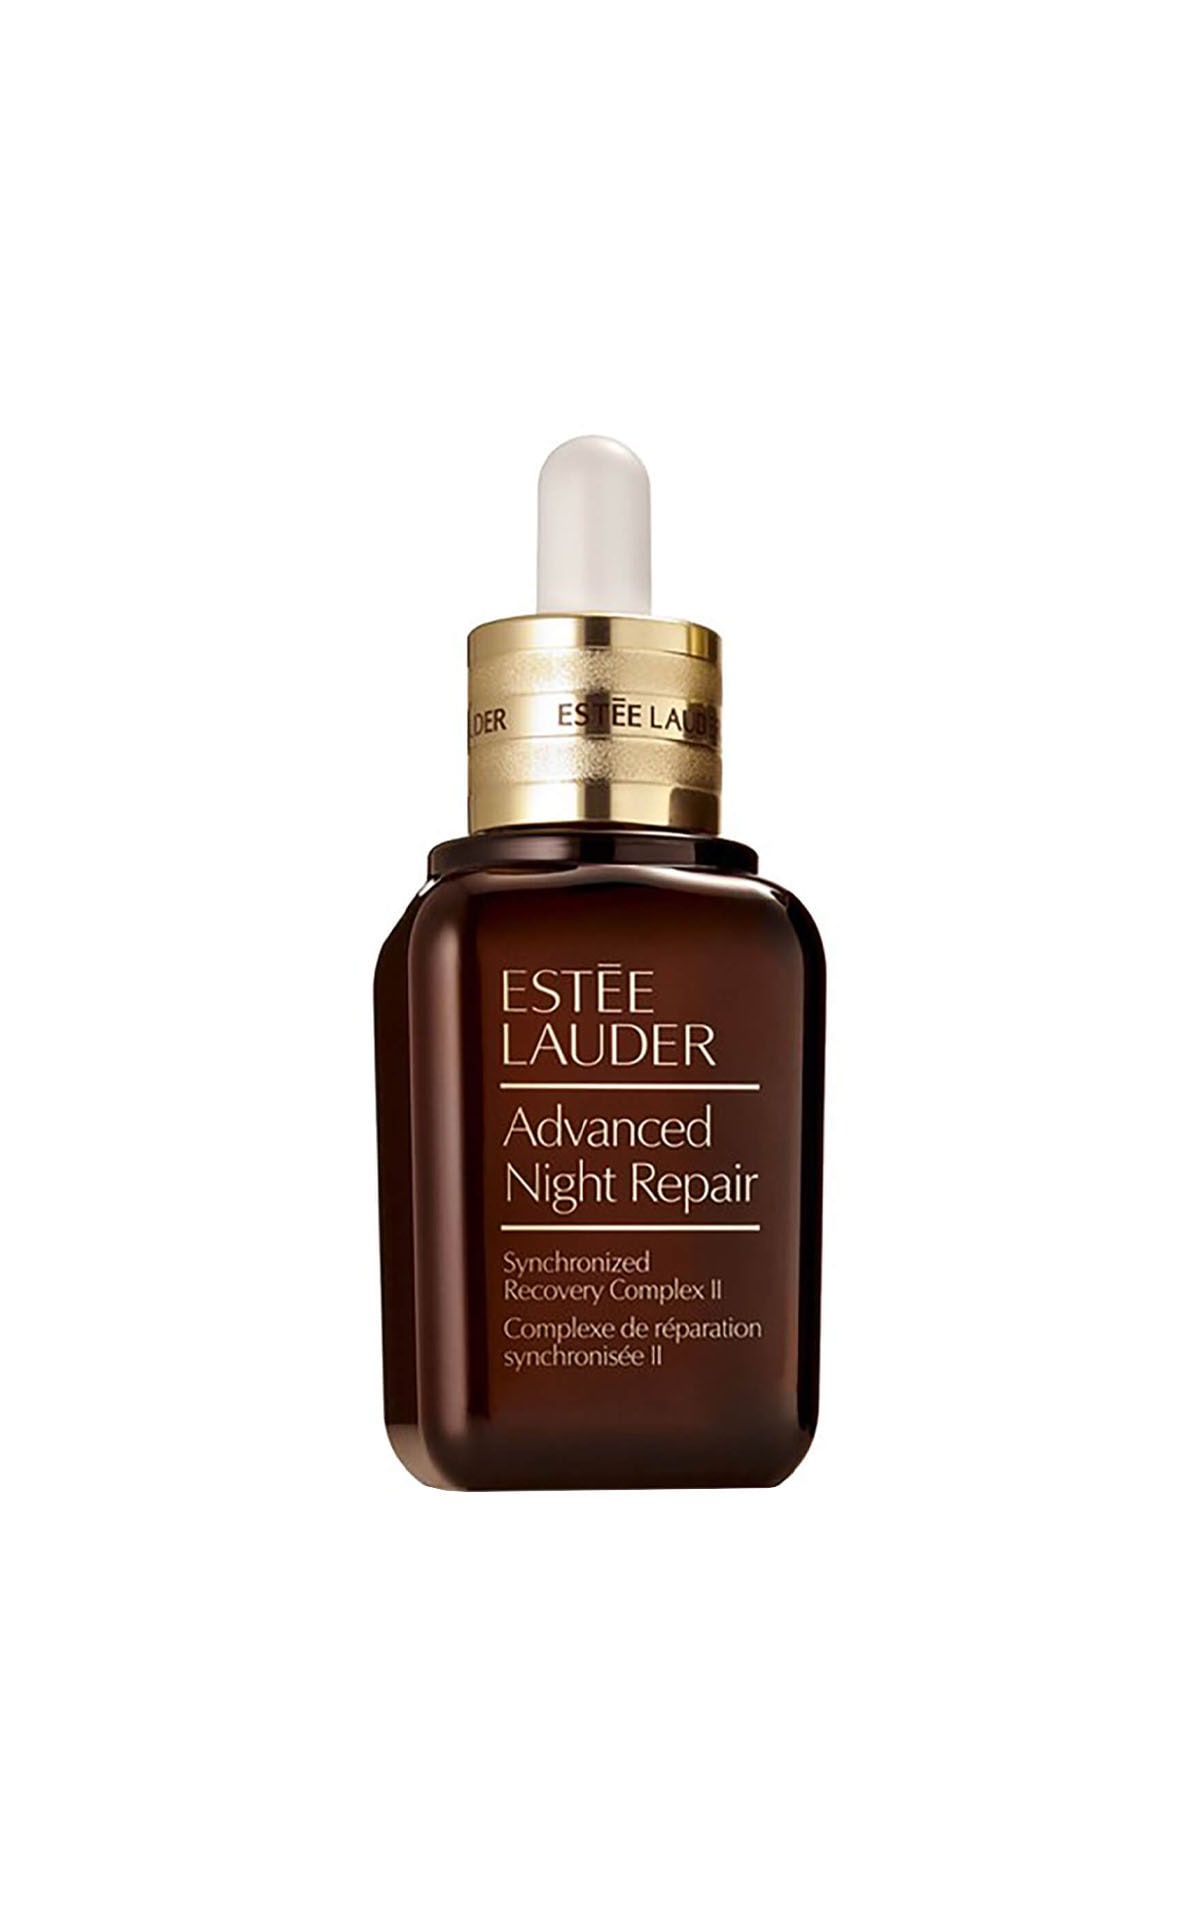 Estee Lauder Advanced Night Repair outlet